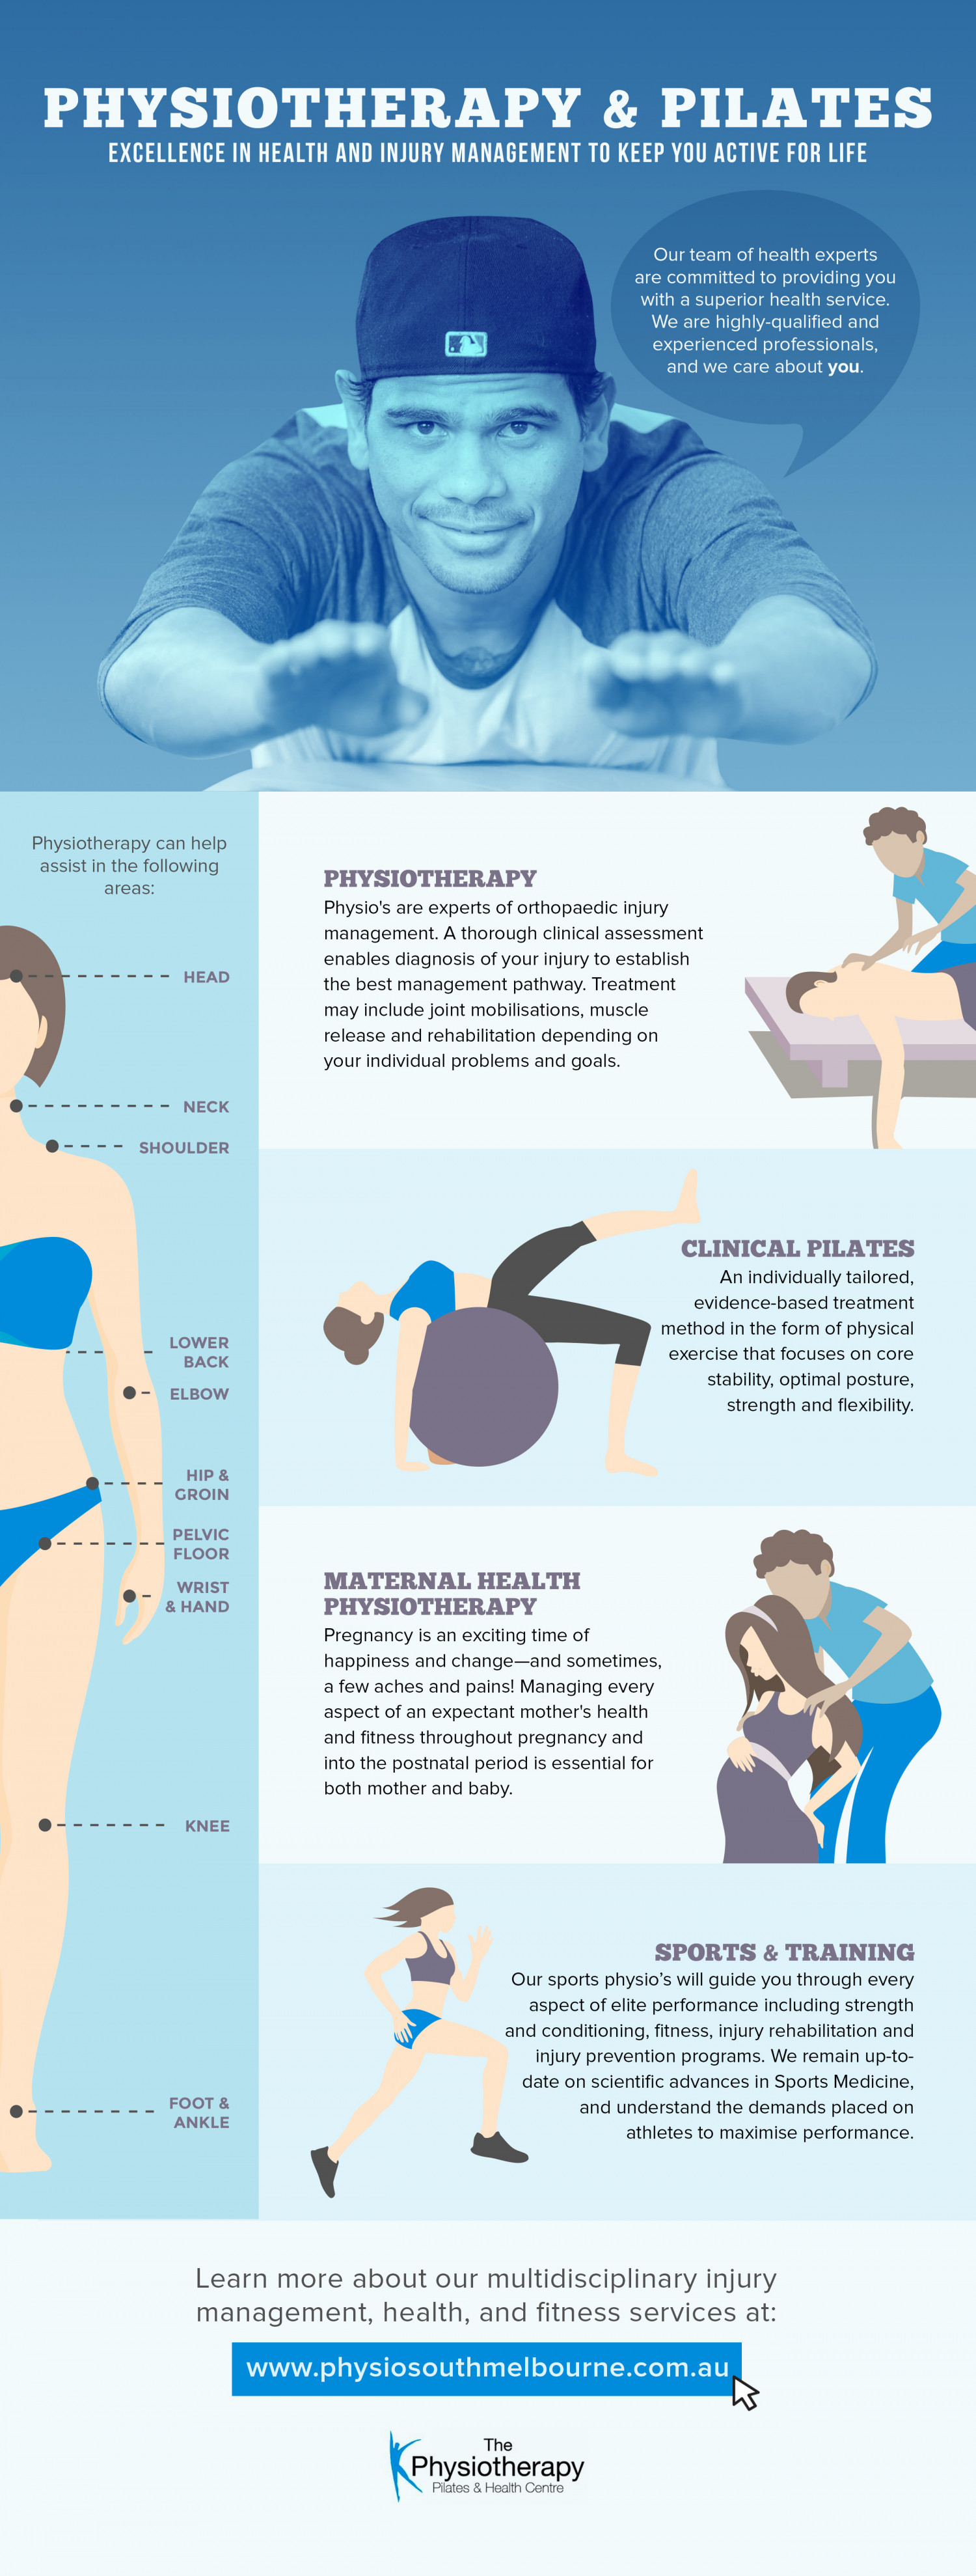 Physiotherapy & Pilates - Excellence in Health and Injury Management to Keep You Active for Life Infographic